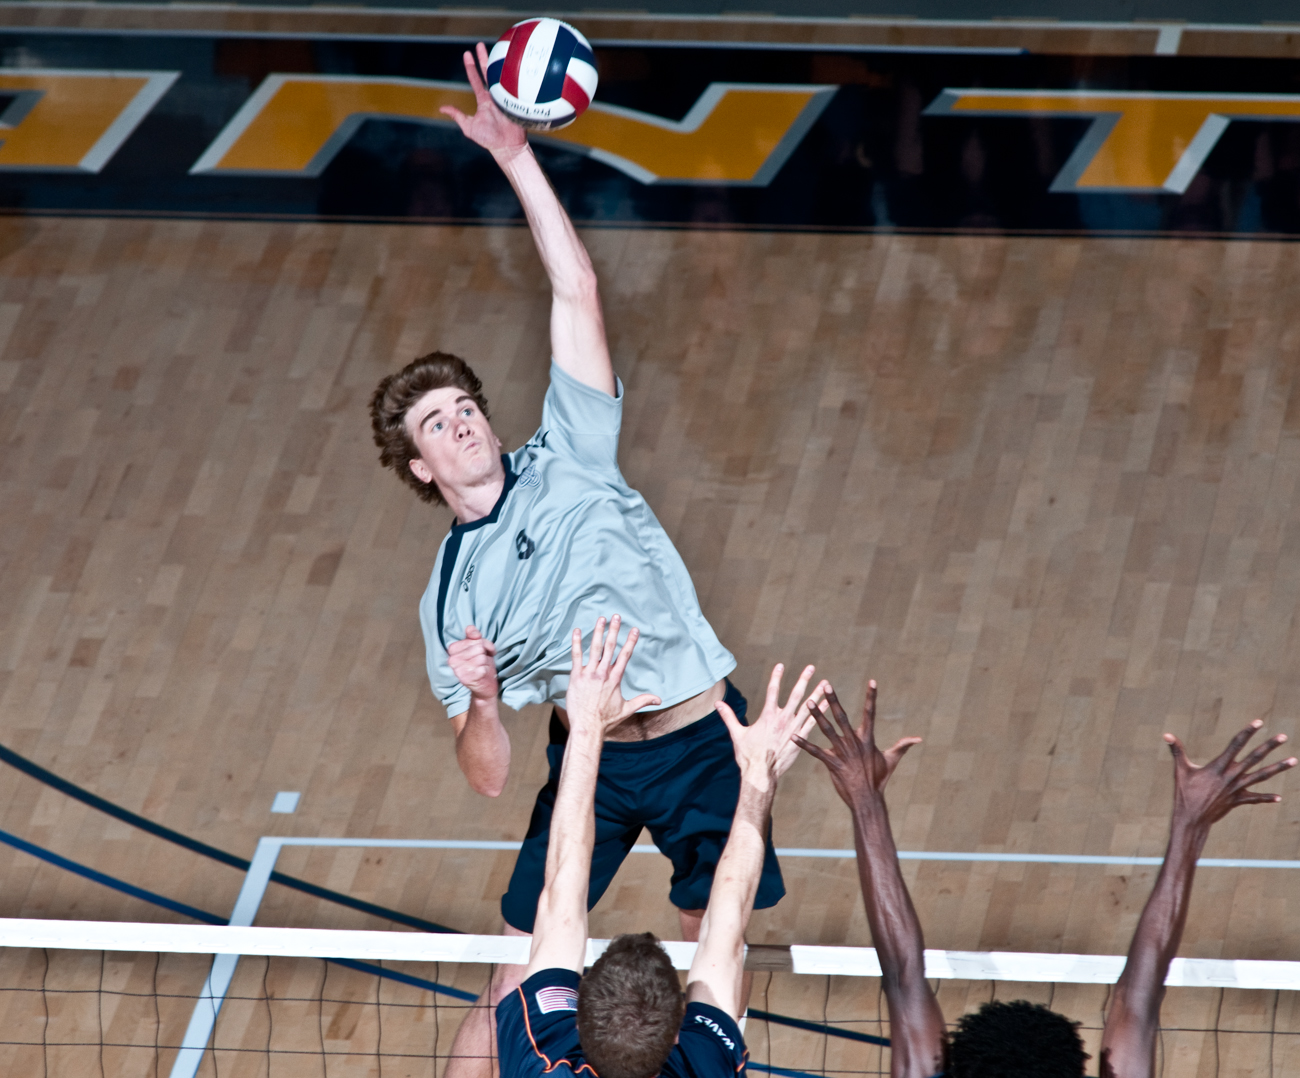 04-11-09_Mes_VBall_Roeder_4